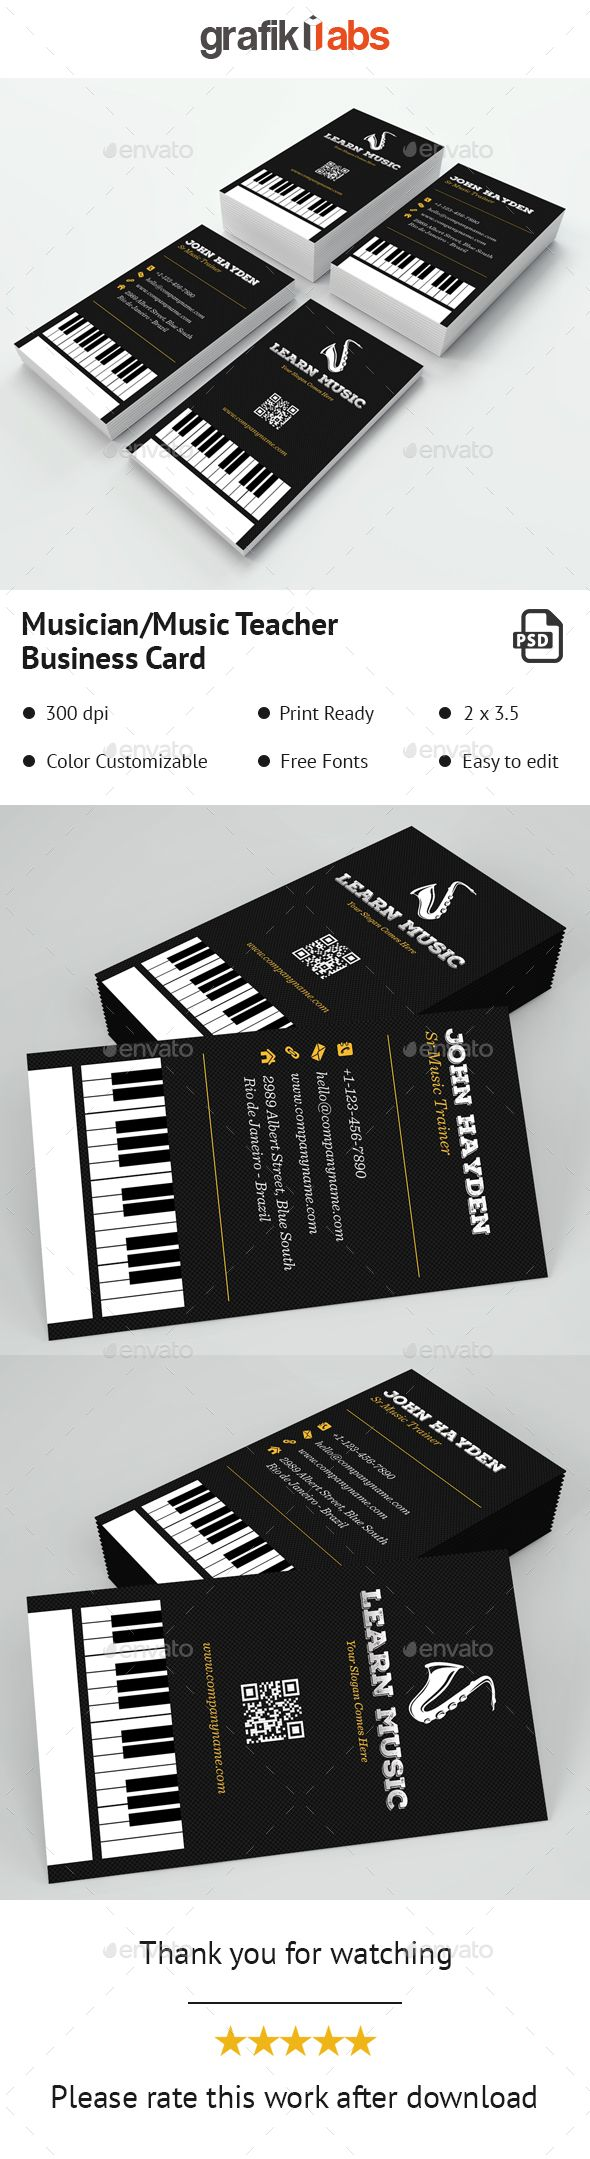 Piano/Musician Business Card | Musicians, Business cards and ...